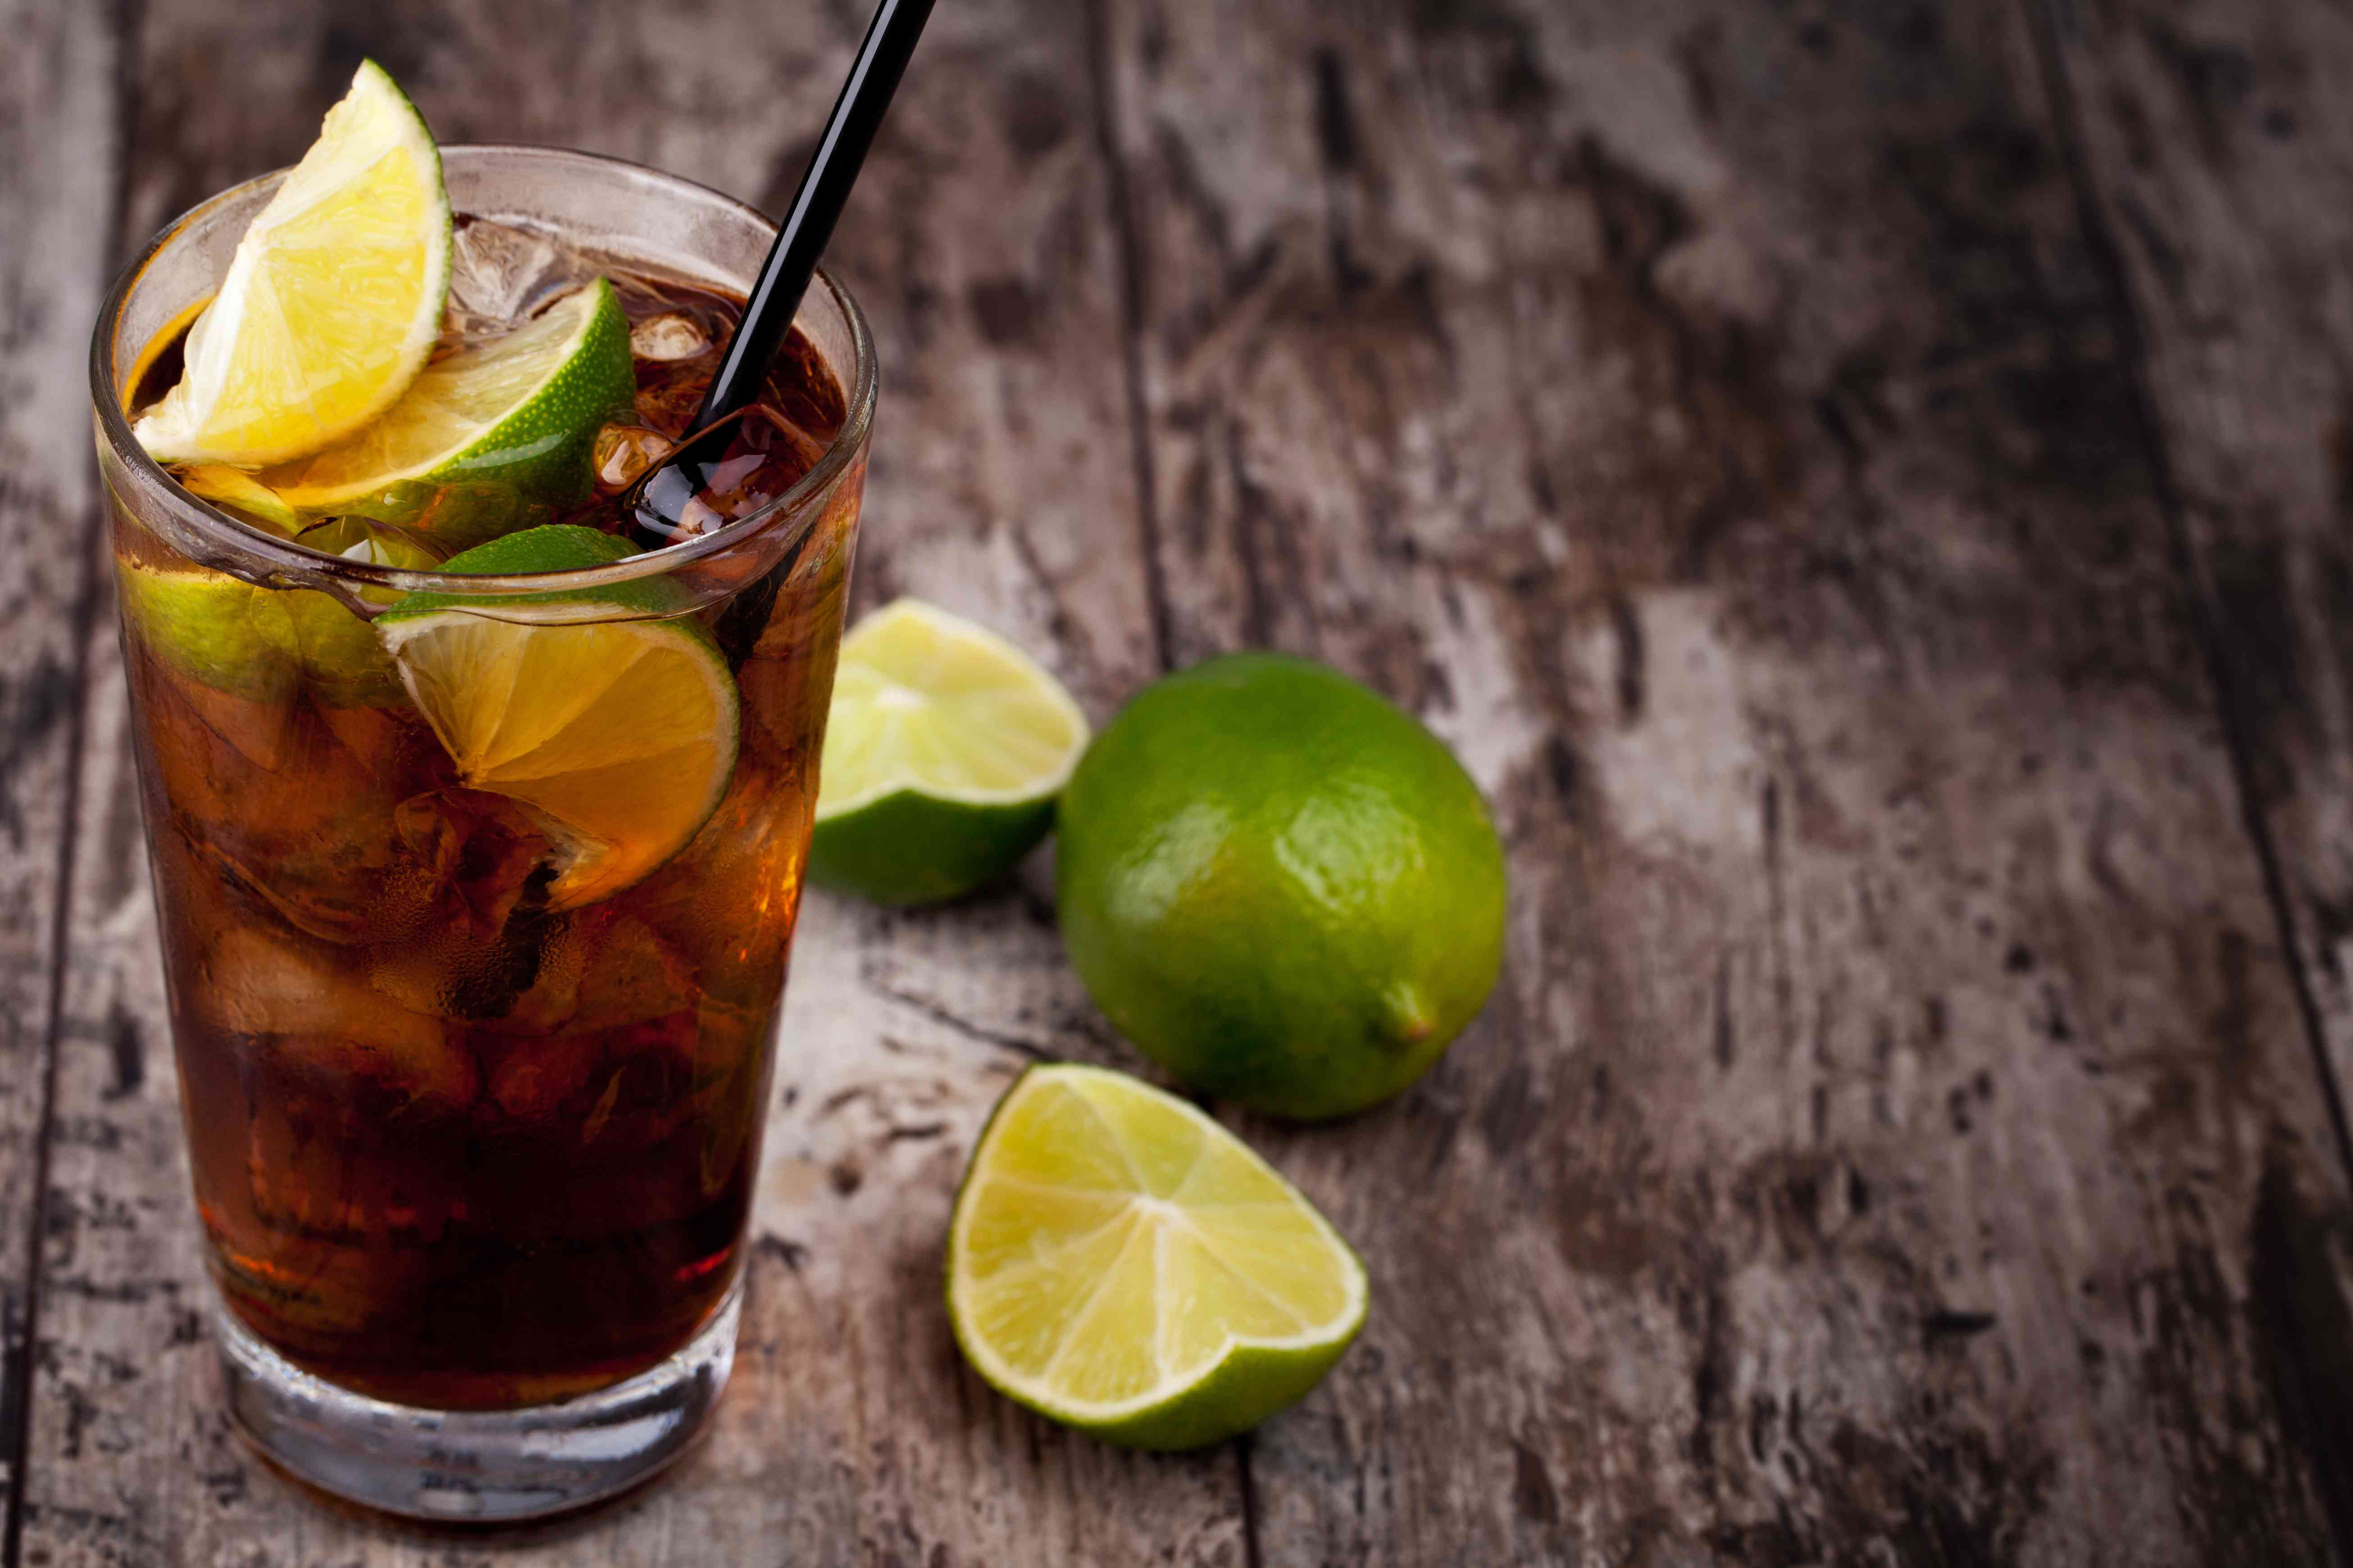 Cuba Libre drink placed on rustic table